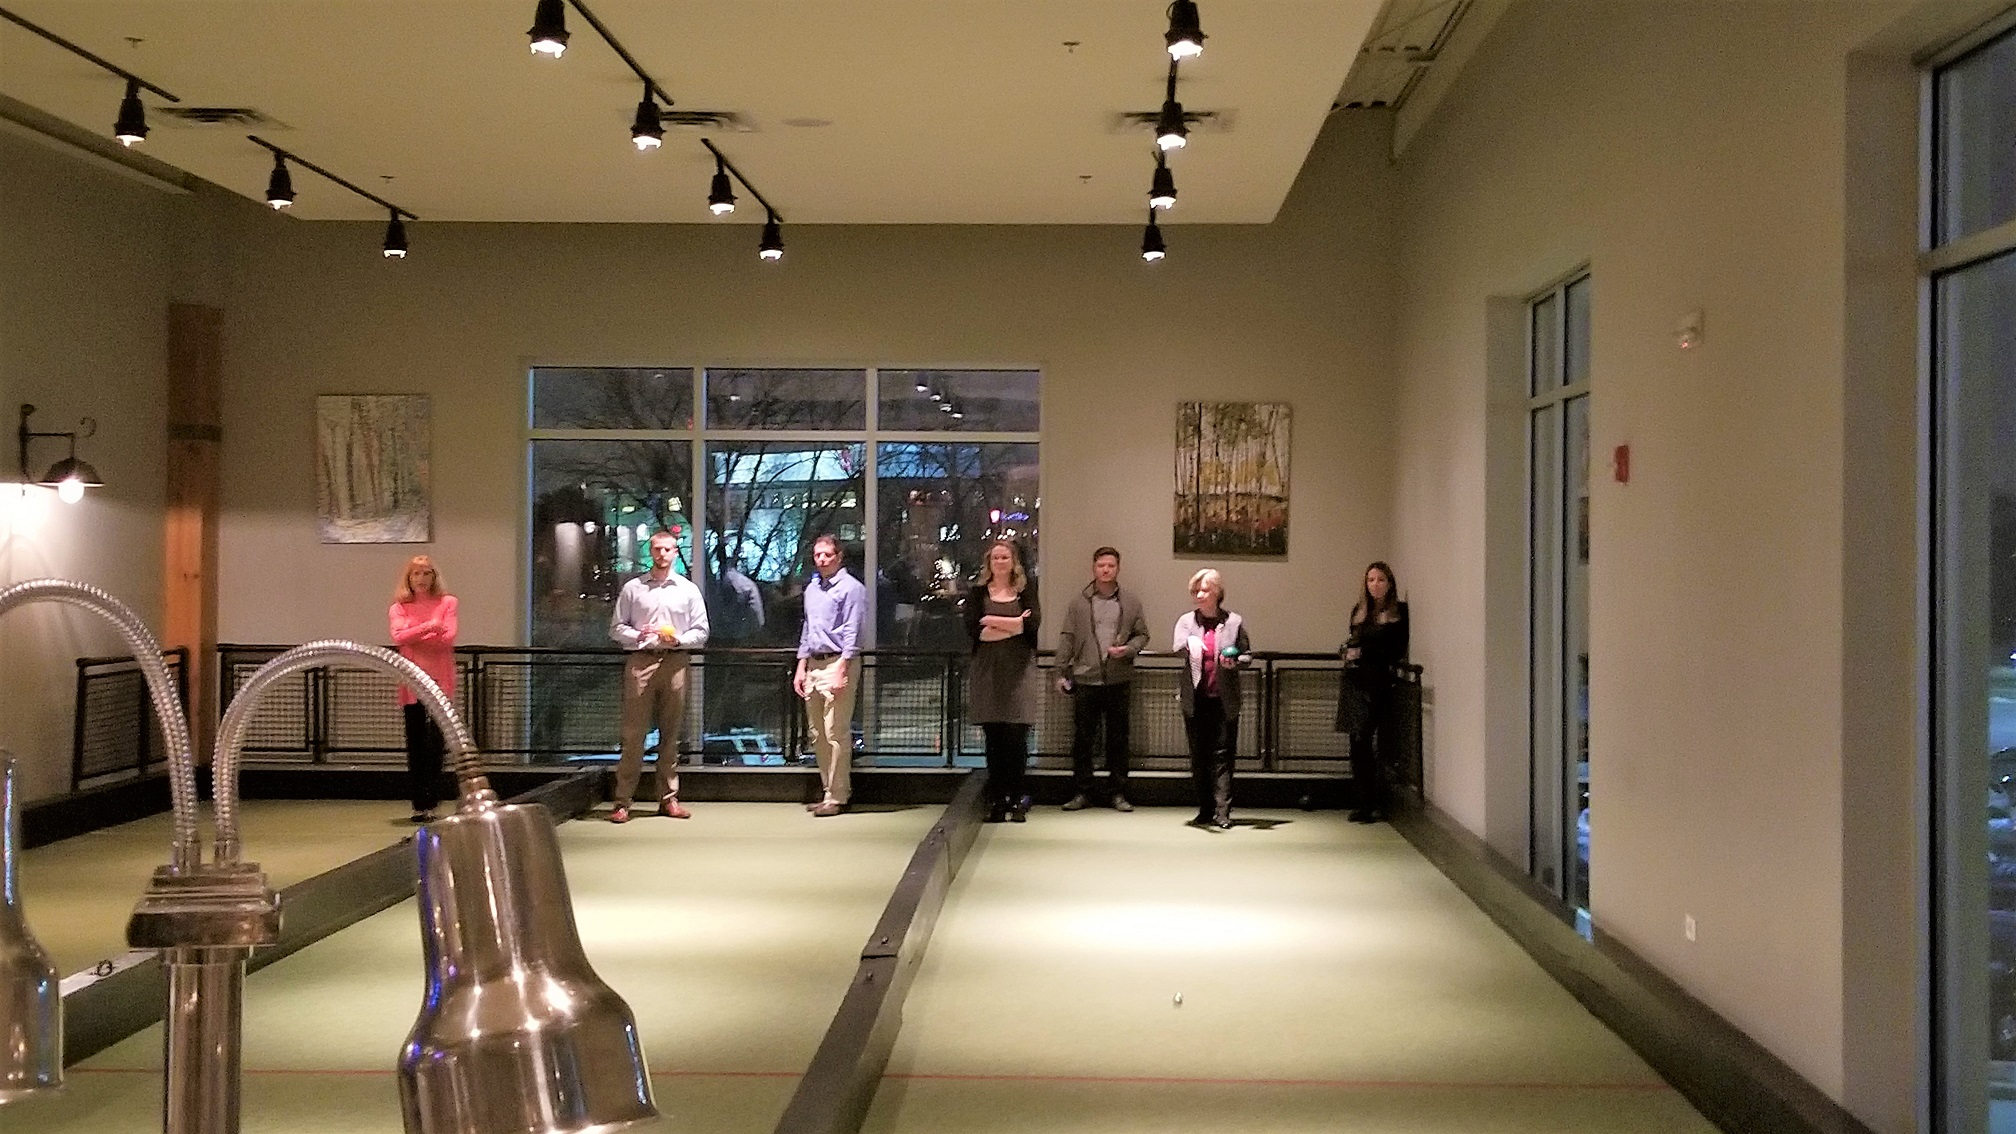 IMC celebrated its 2018 Holiday Party at Pinstripes Oak Brook with an evening of bocce ball, good food, and great company!